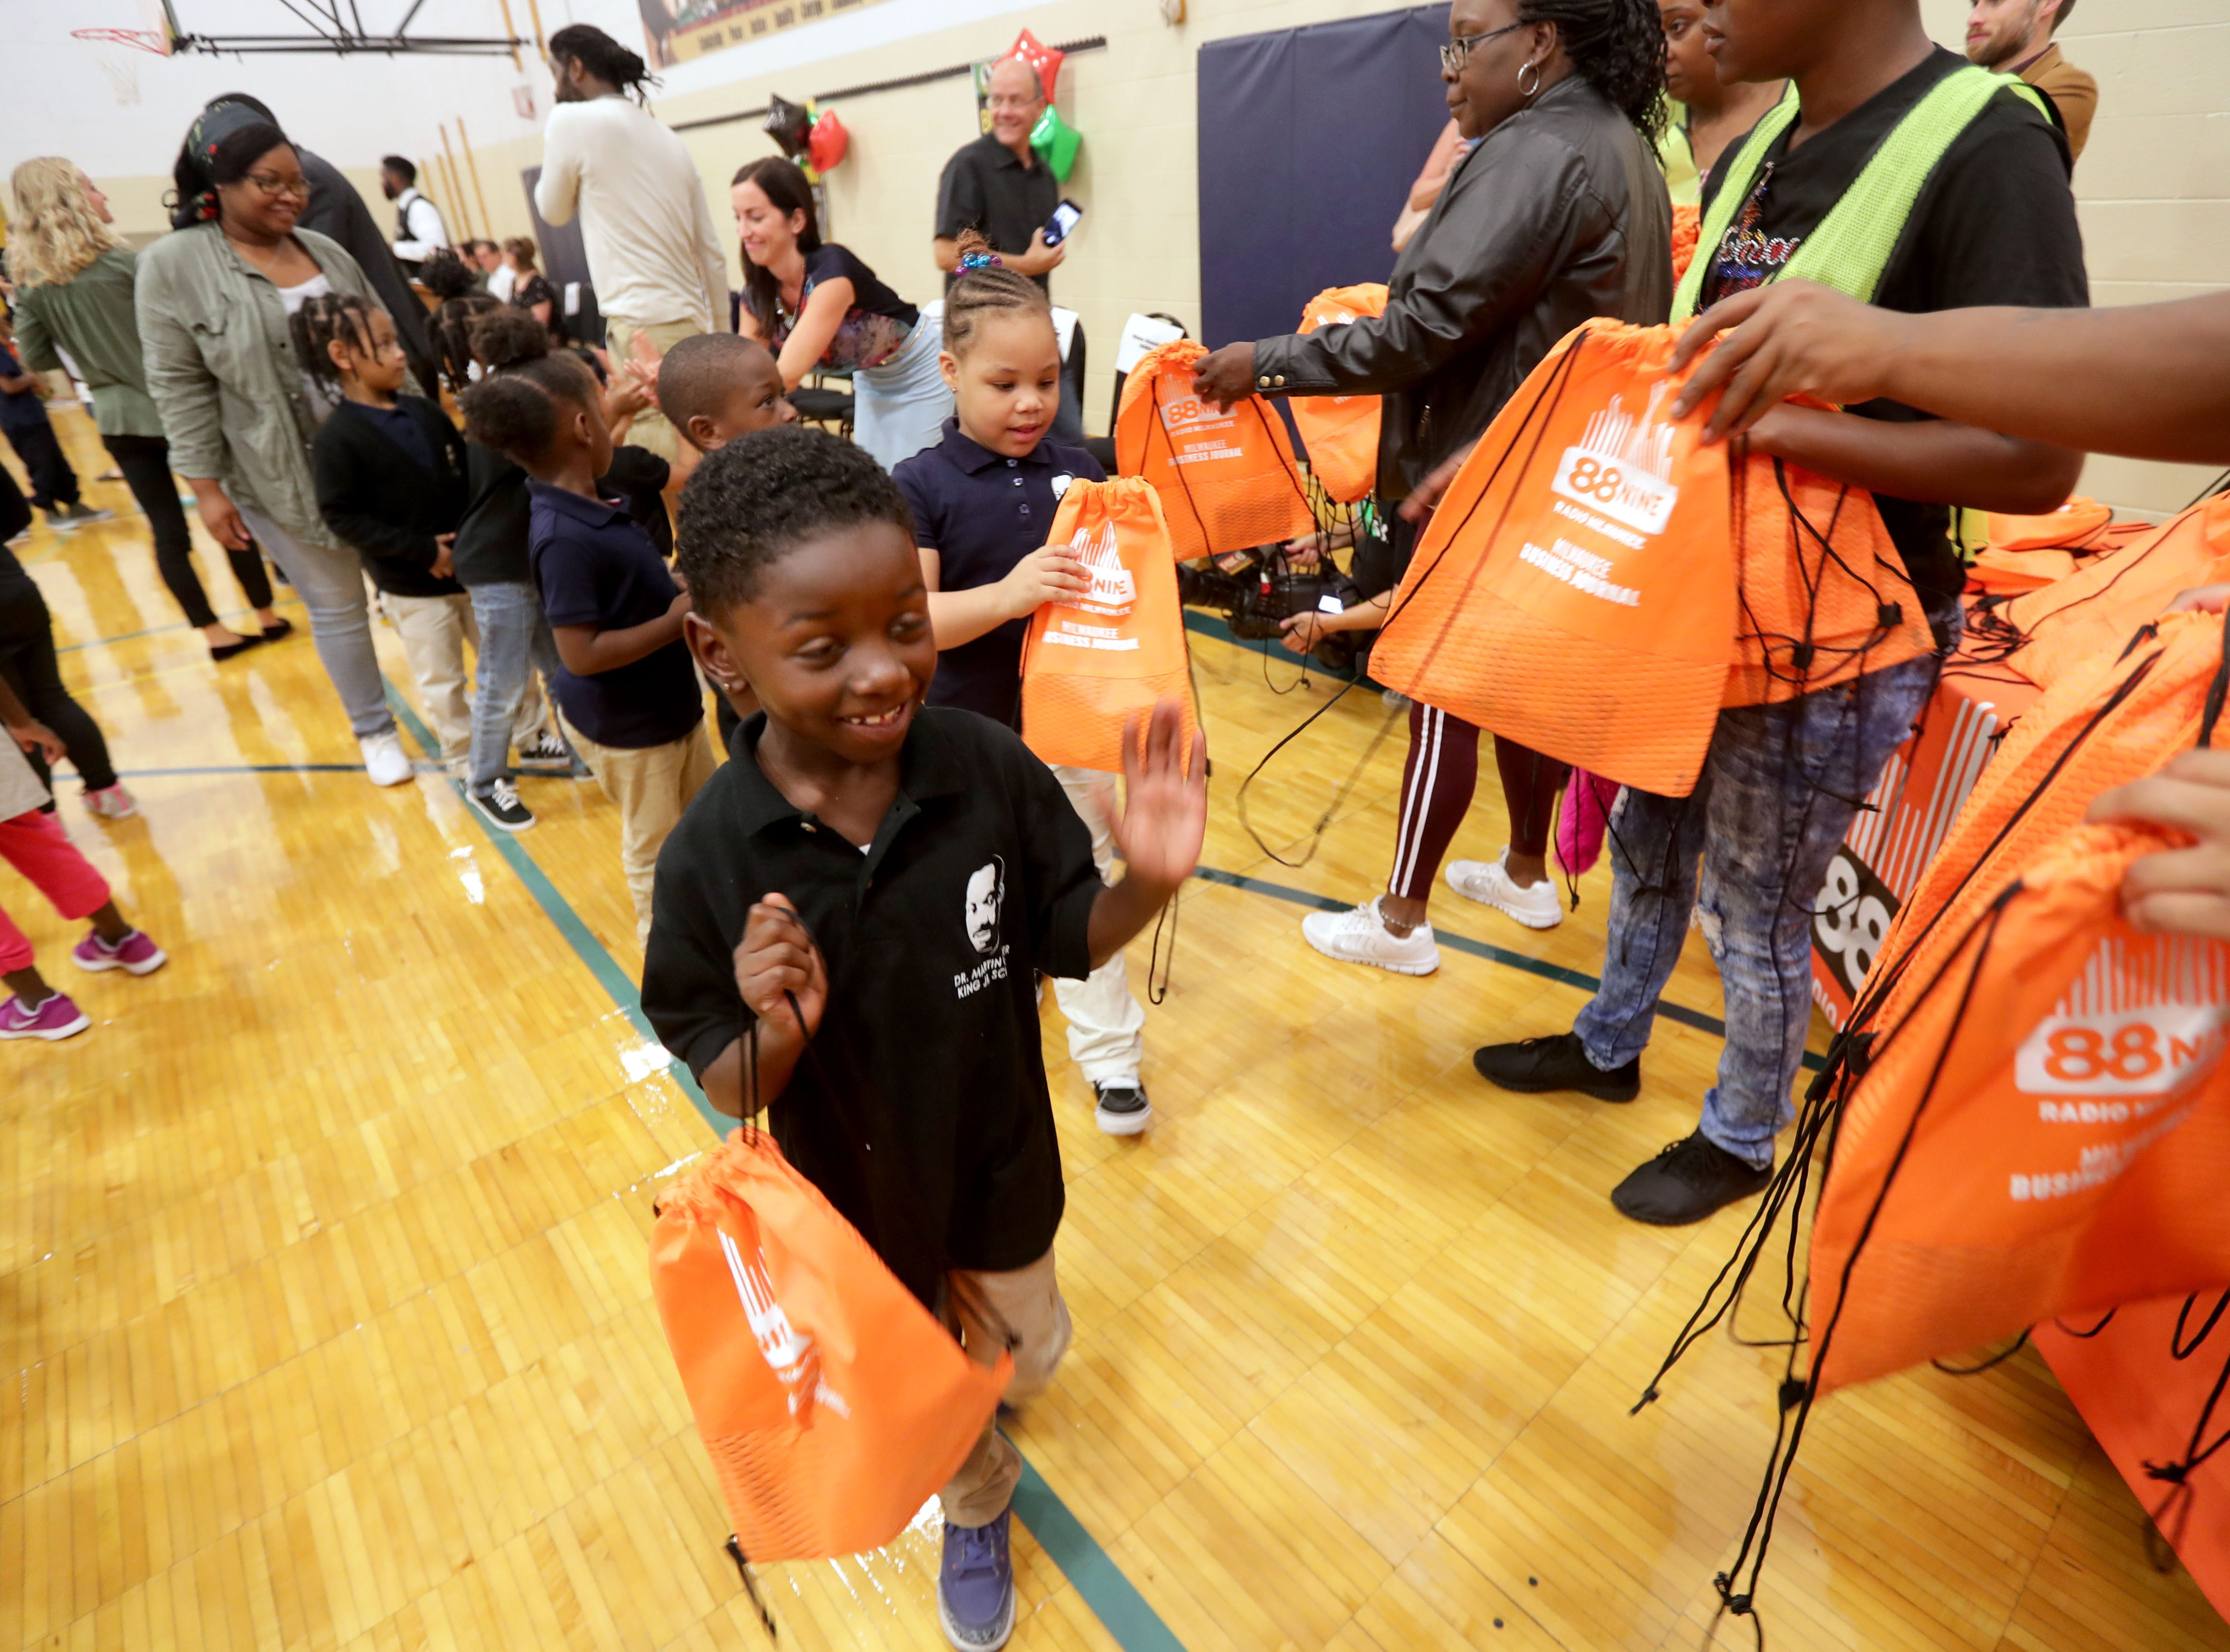 Raquon Totton, a Dr. Martin Luther King Jr. student, gets his backpack as volunteers pass them out.